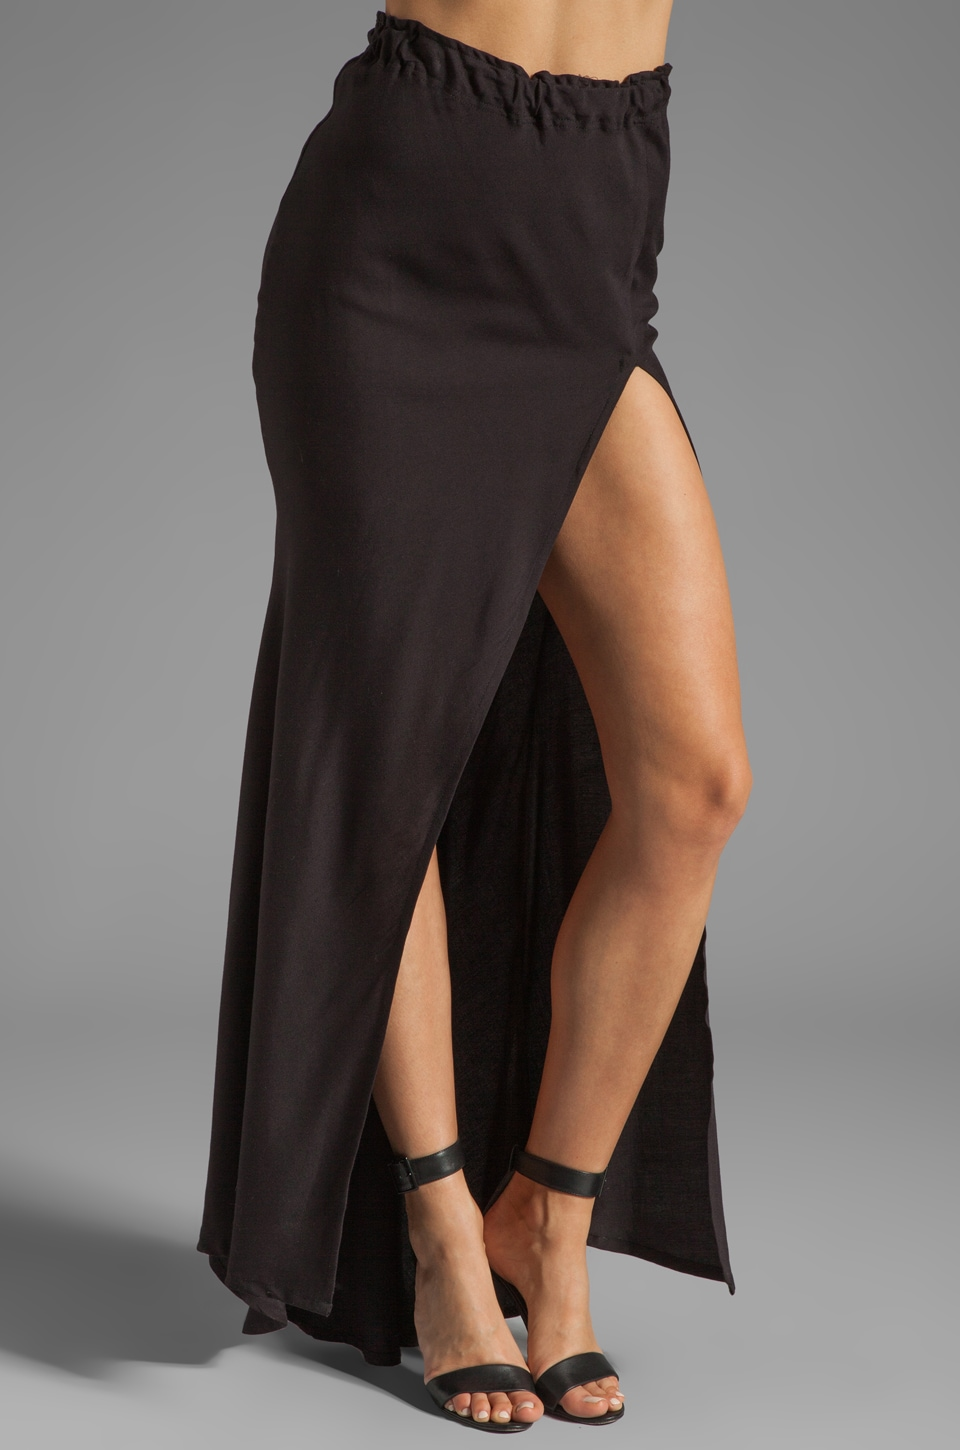 STONE_COLD_FOX Slit Skirt in Black